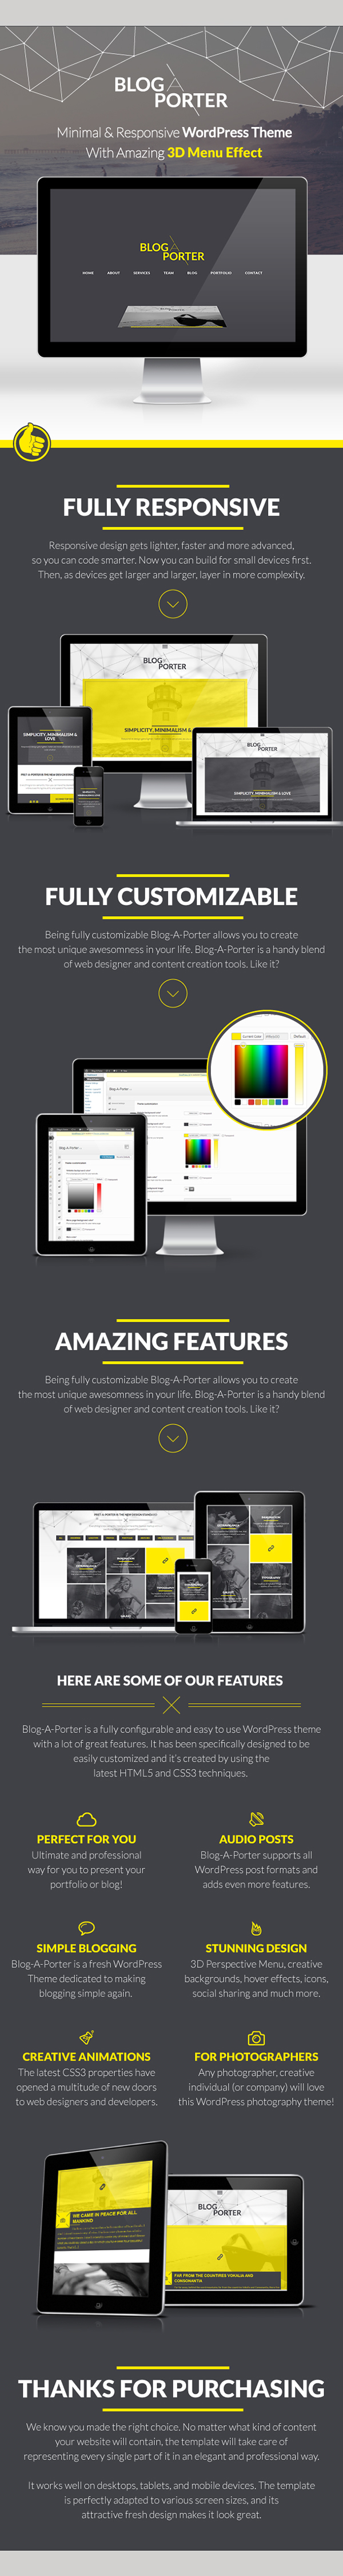 Google chrome theme internet explorer - Works In All Major Browsers Internet Explorer Firefox Opera Safari Google Chrome Theme Comes With A Detailed Documentation Demo Content Included